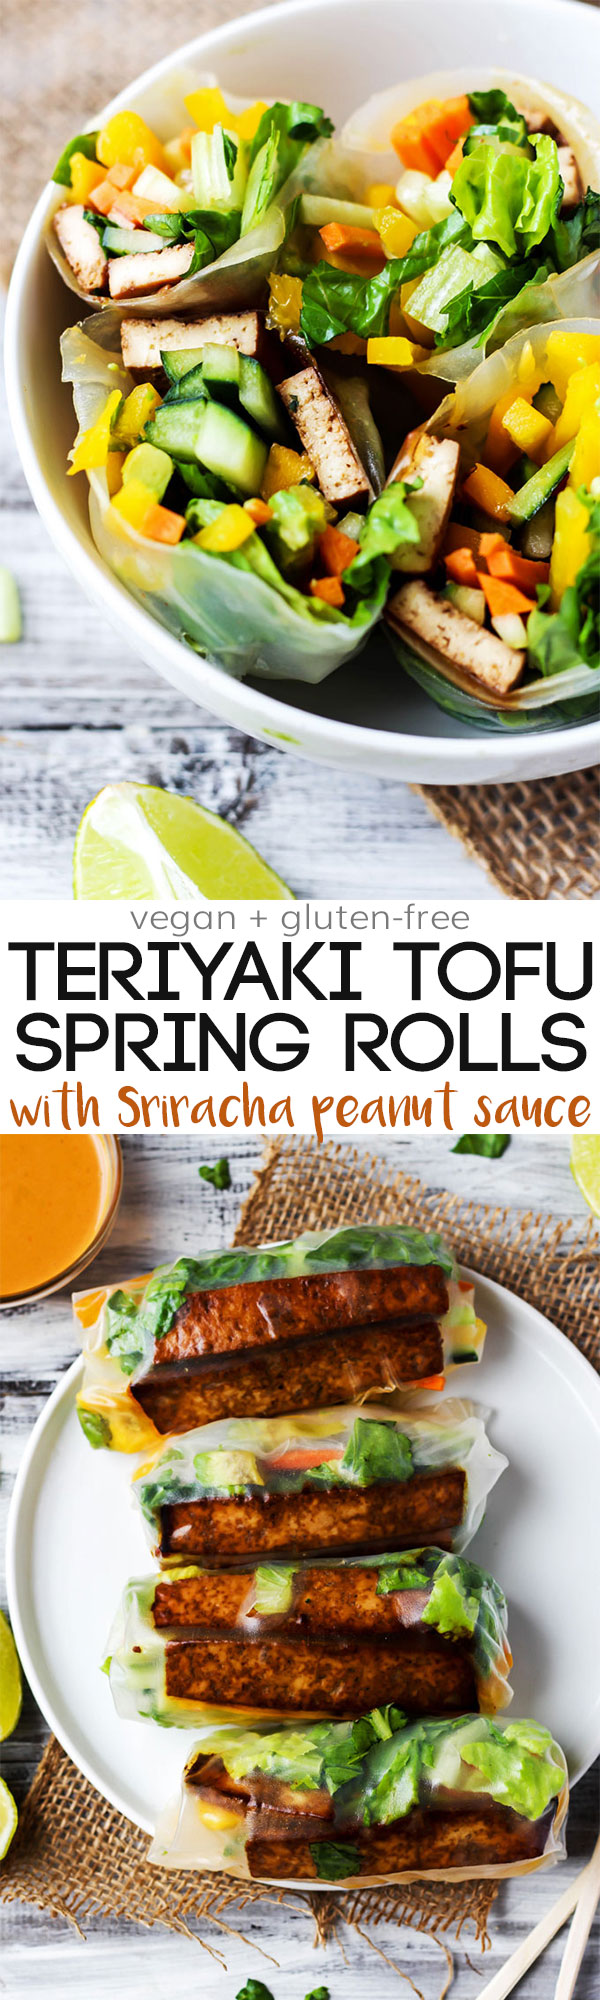 Enjoy a few Teriyaki Tofu Spring Rolls for a healthy lunch or dinner that's packed with fresh vegetables! Vegan, gluten-free & ready in under 1 hour.